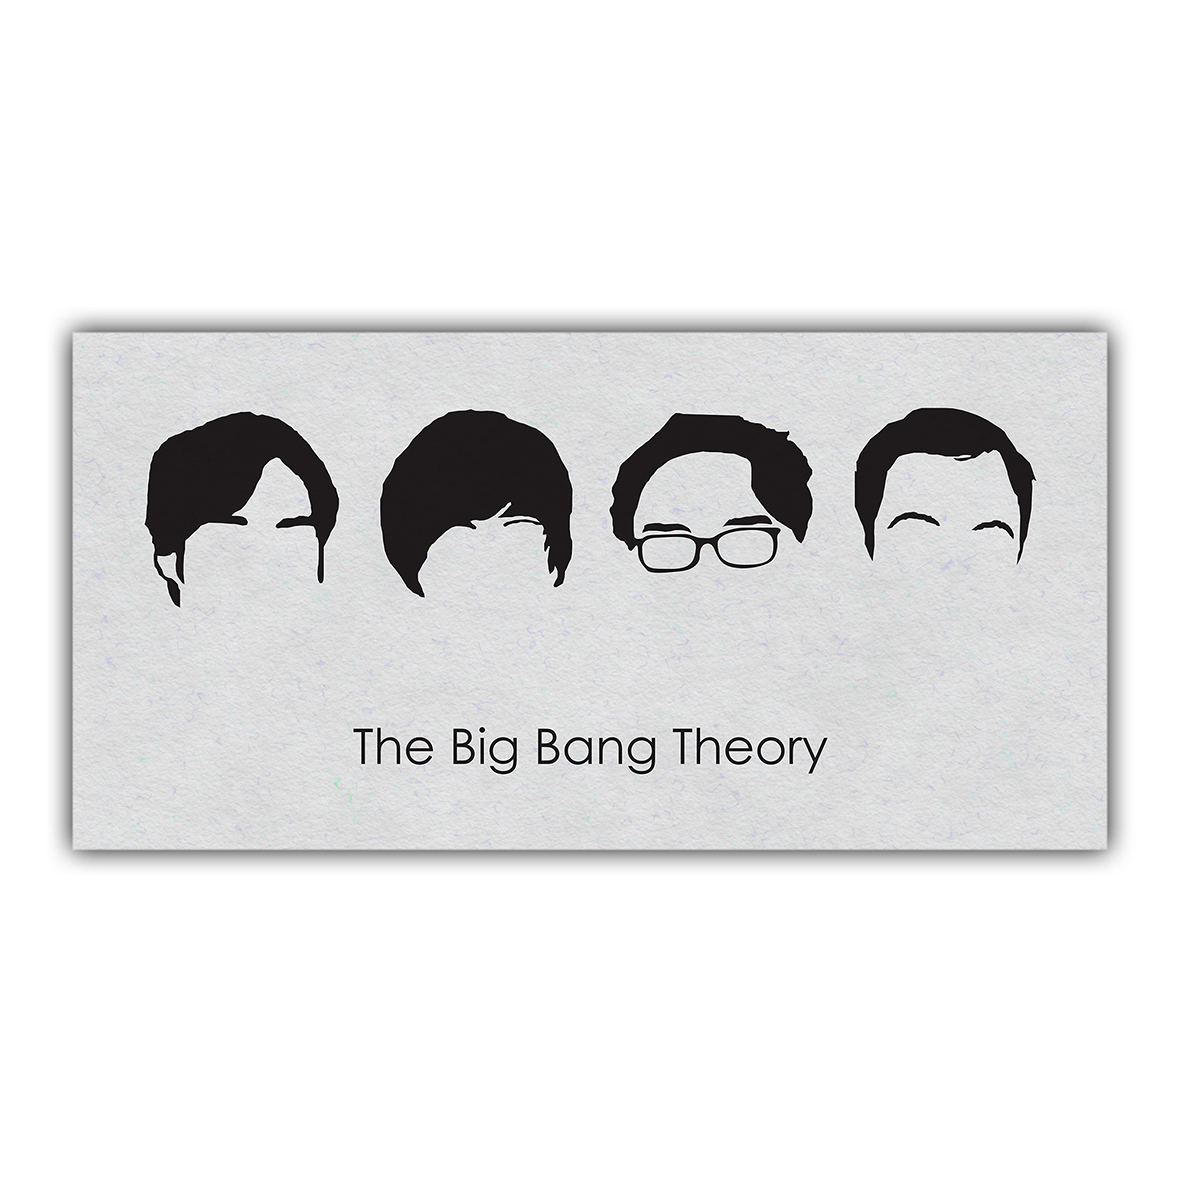 The Big Bang Theory Vectors